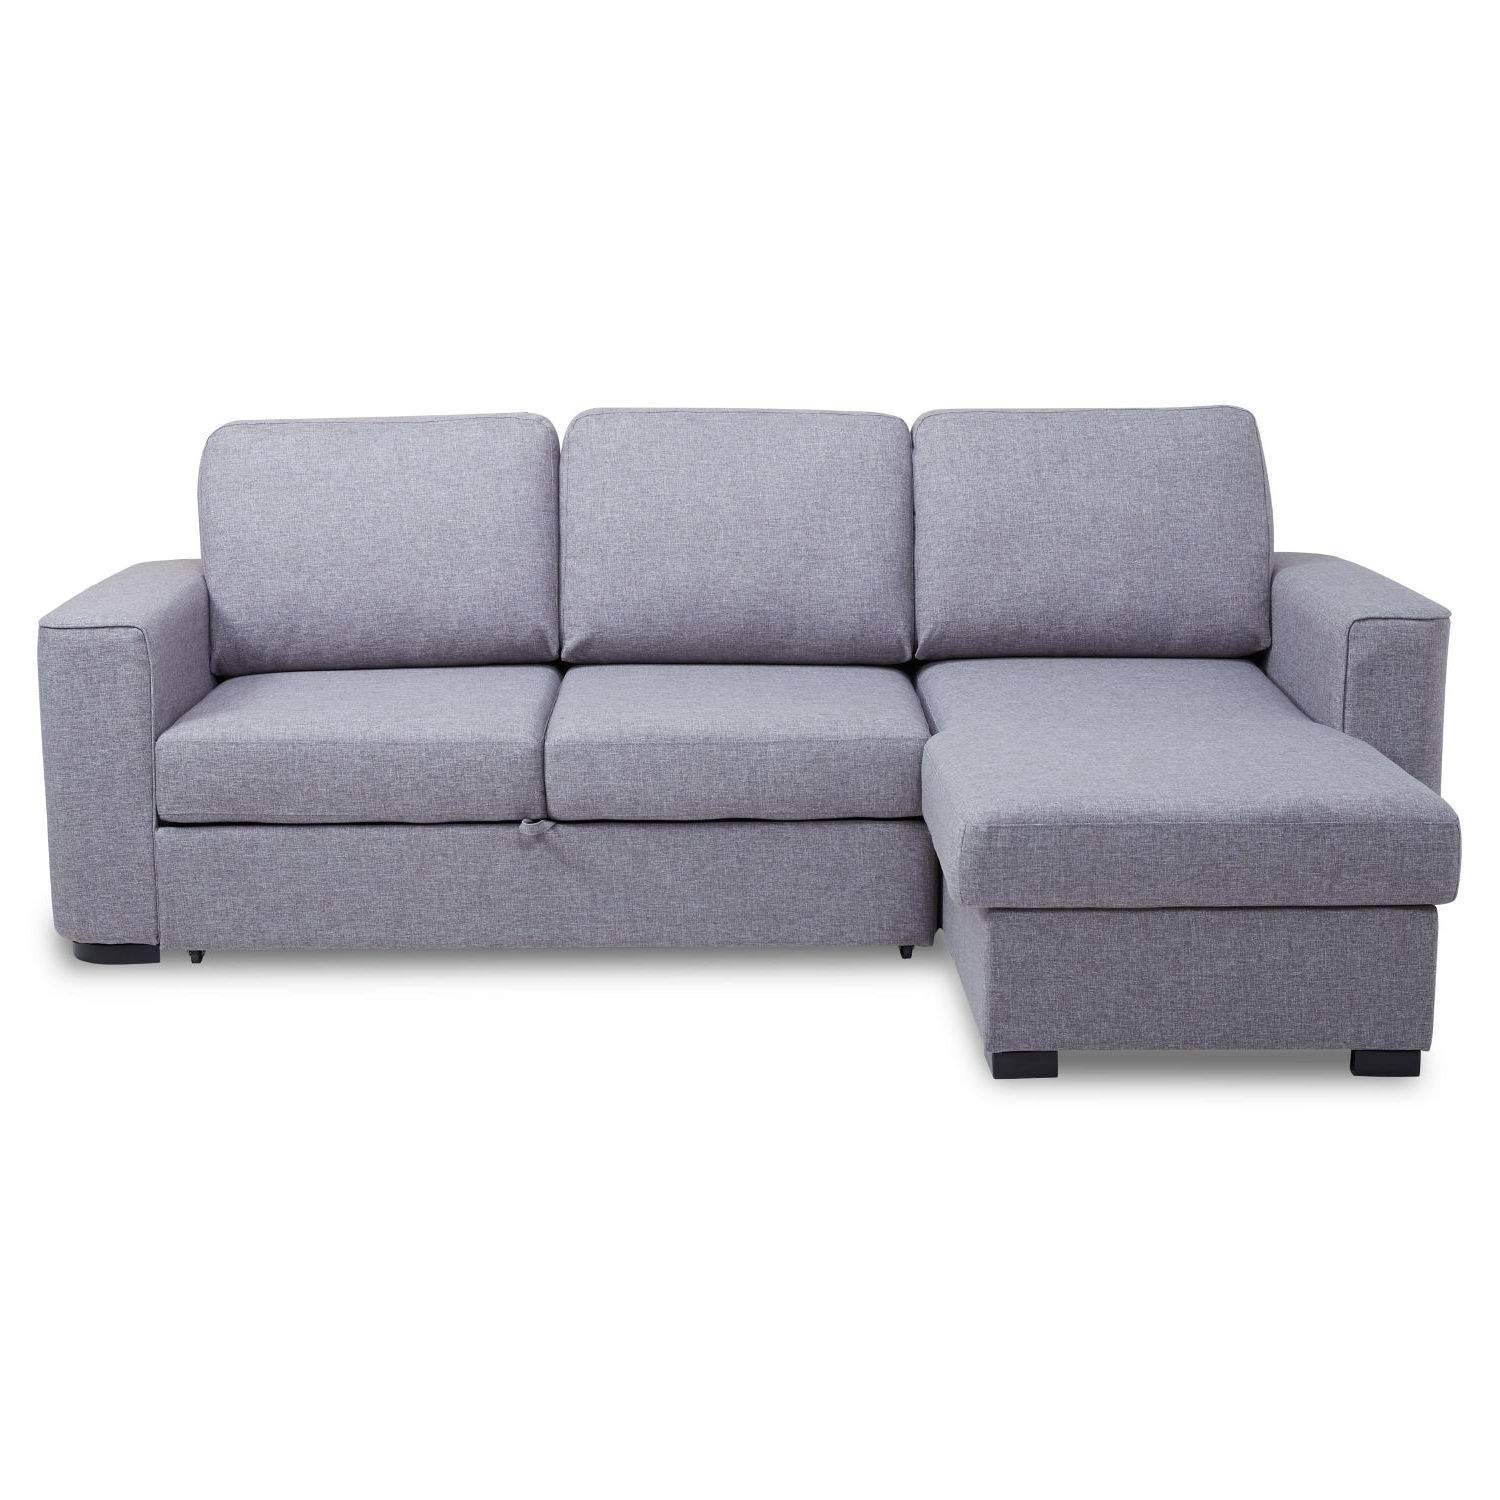 Ronny Fabric Corner Chaise Sofa Bed With Storage – Next Day throughout Sofa Beds With Storage Chaise (Image 12 of 15)